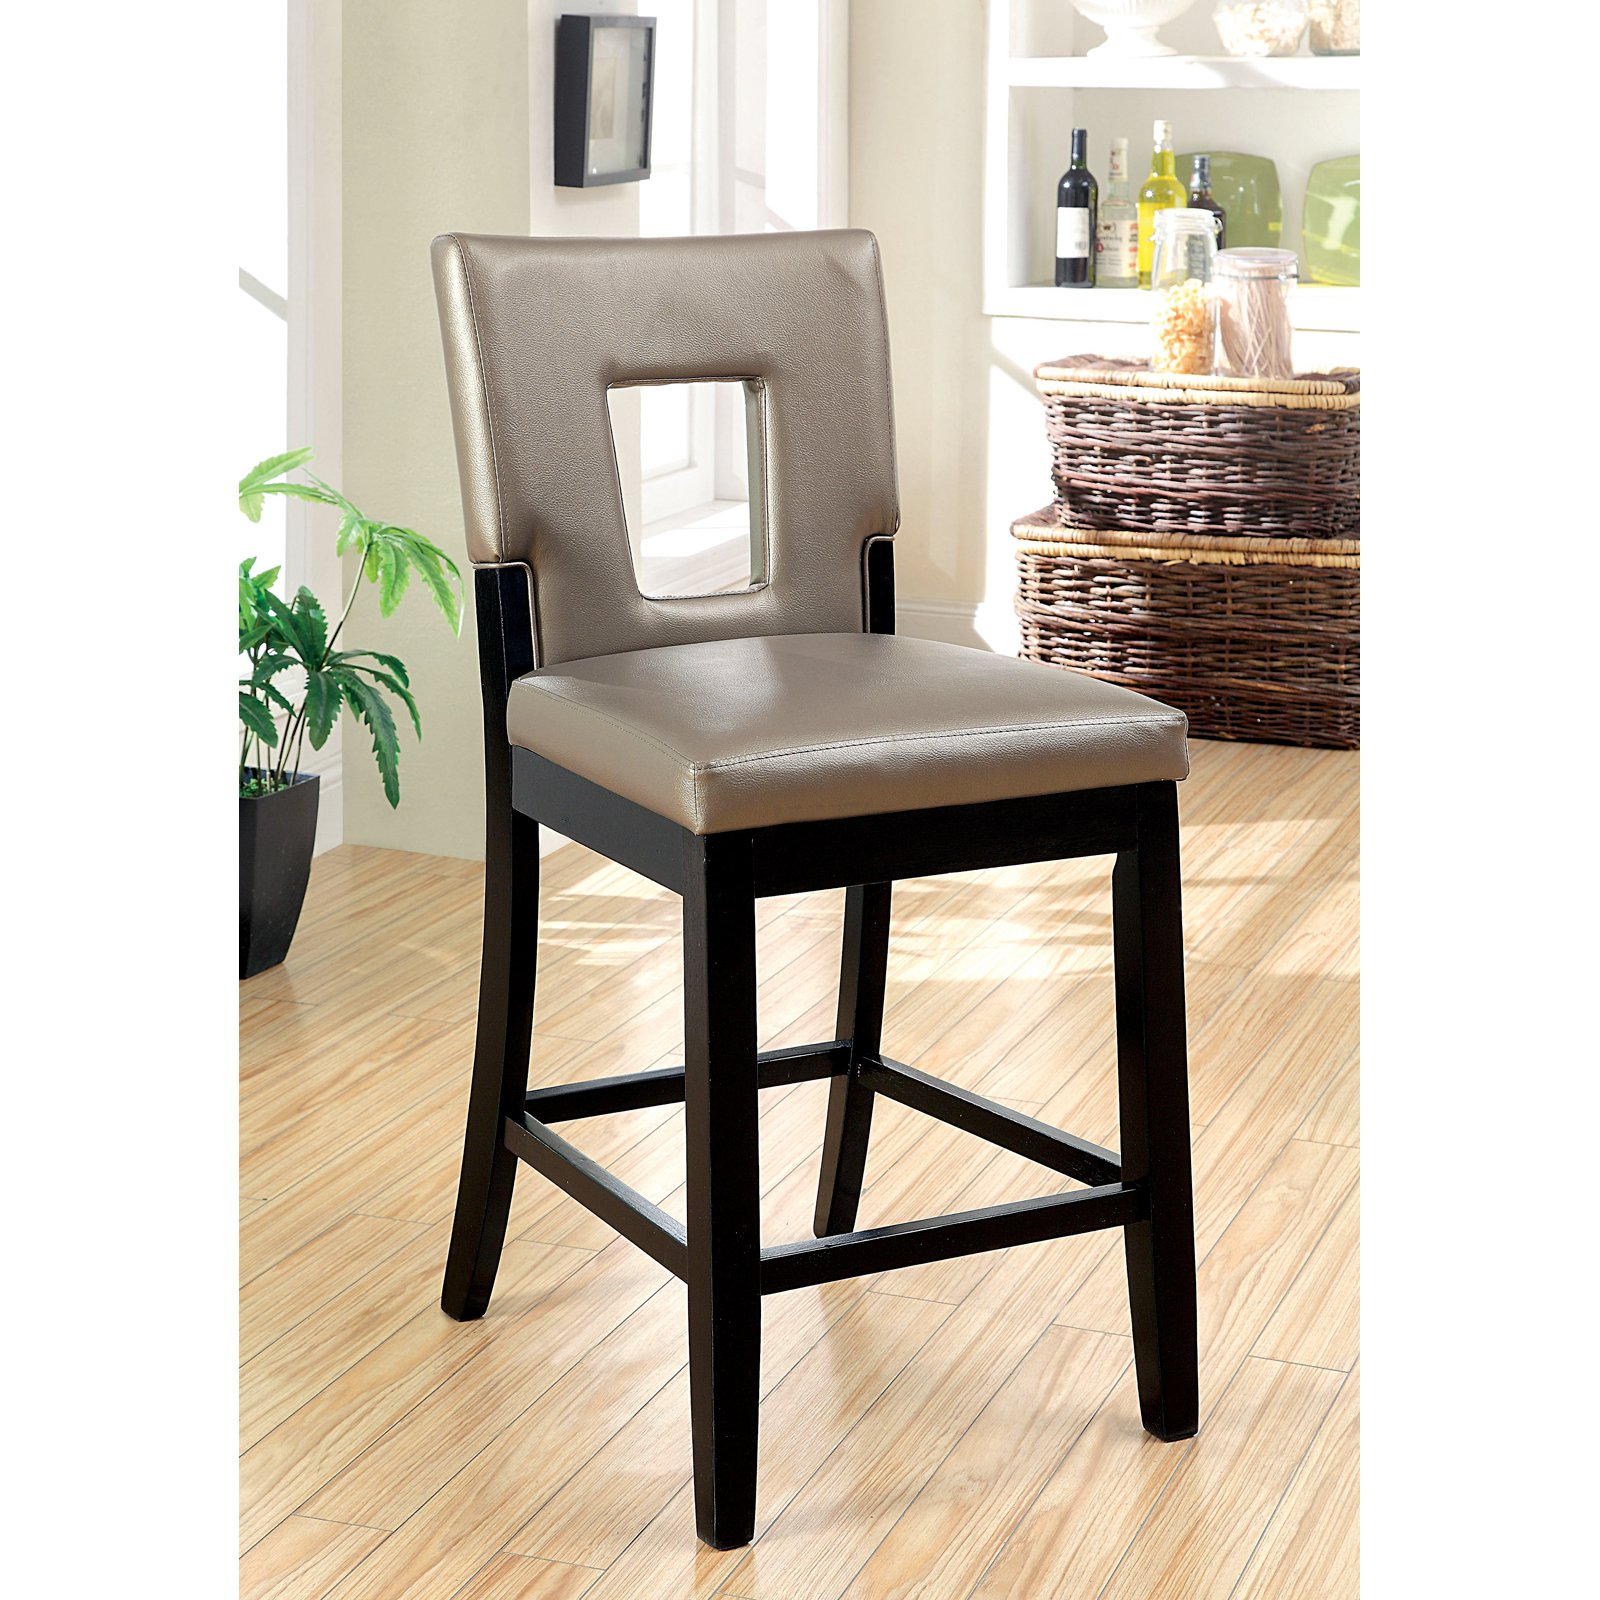 Terrific Furniture Of America Vanderbilte 2 Piece Counter Height Open Back Dining Chairs Black Dailytribune Chair Design For Home Dailytribuneorg